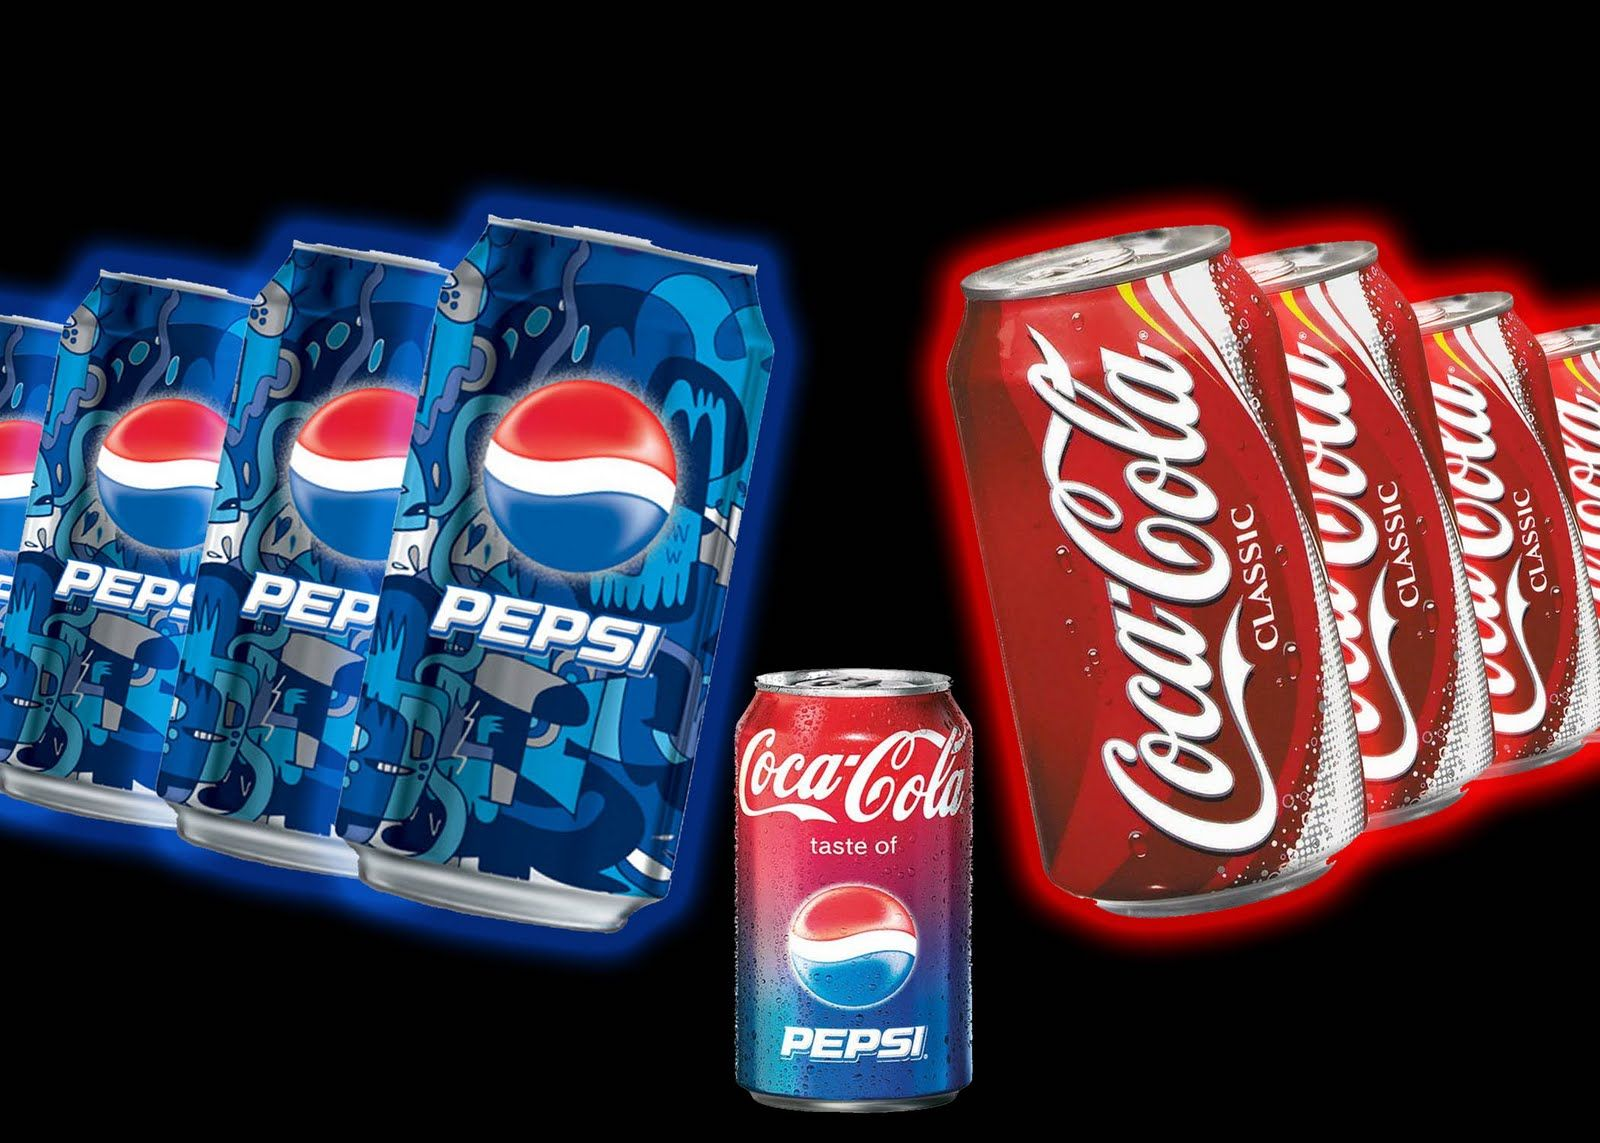 coca cola vs pepsi pepsi vs coca cola coke or coca cola vs pepsi 1041108610831100109610861077 1078110210881080 pepsi vs coca cola coke or pepsi anything n between coca cola drinks and the o jays